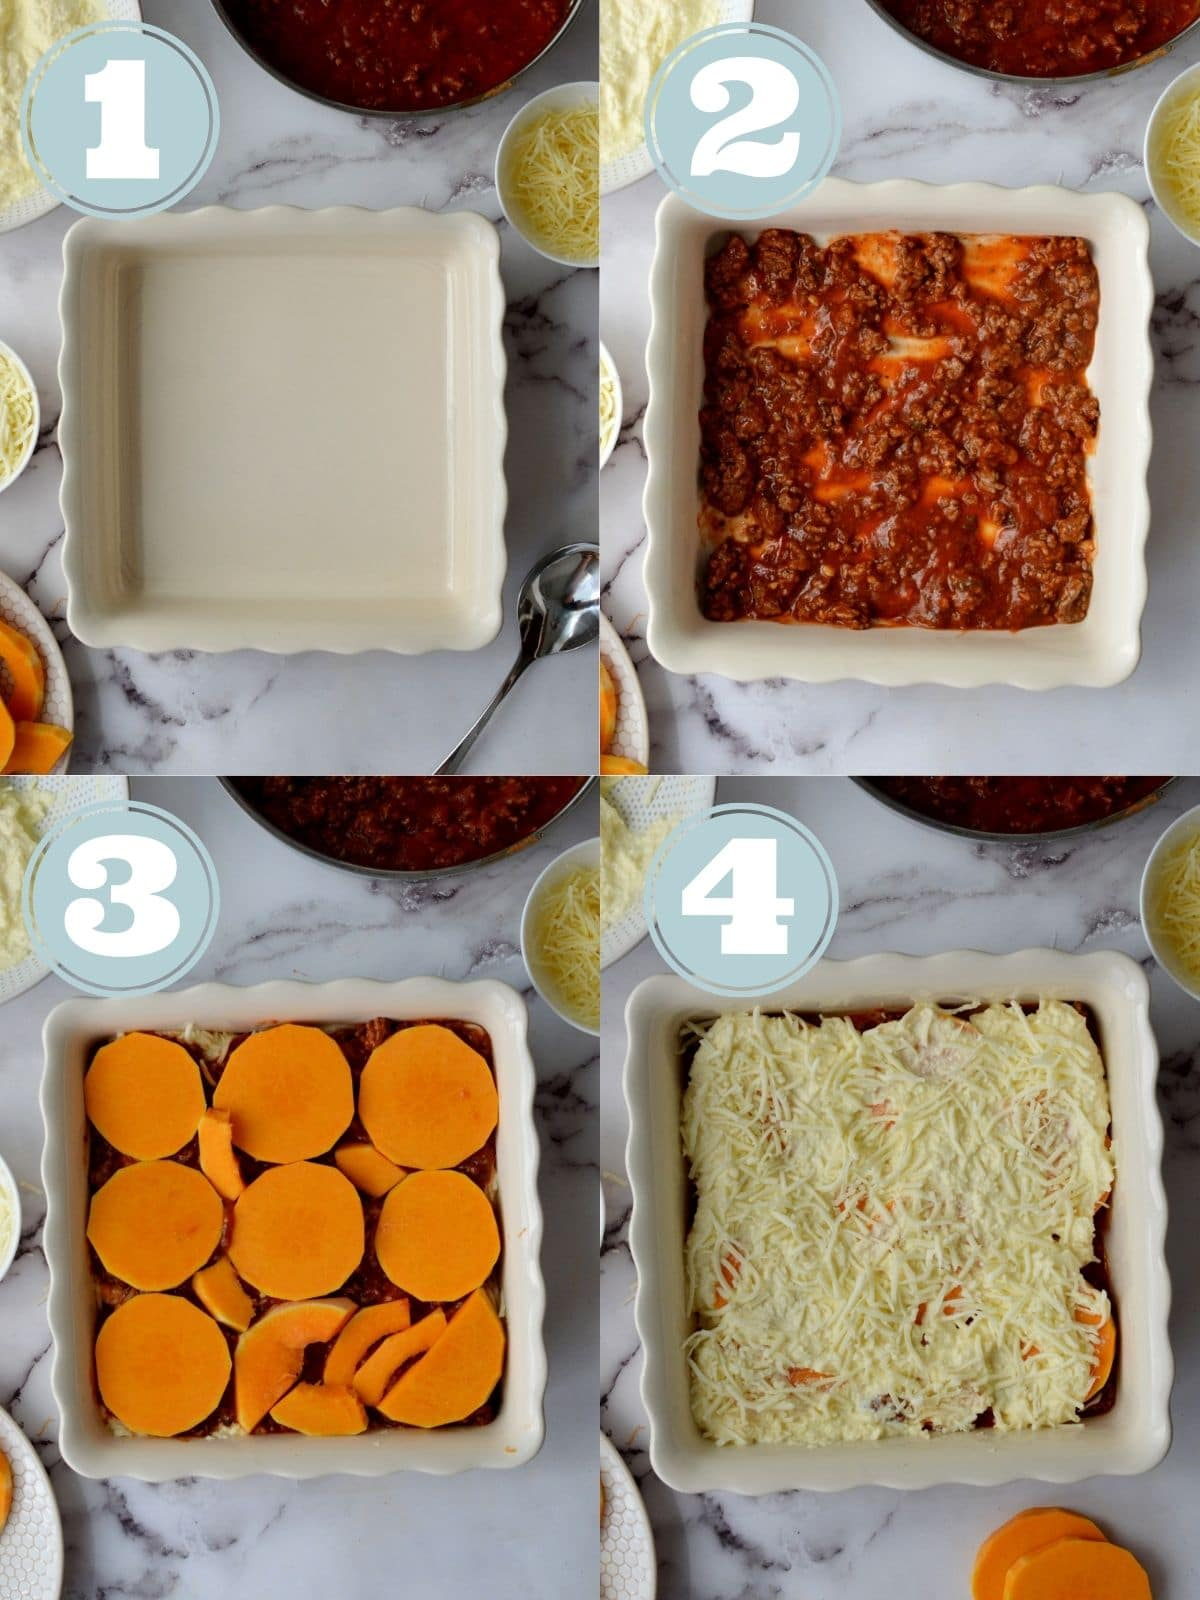 how to assemble the lasagna